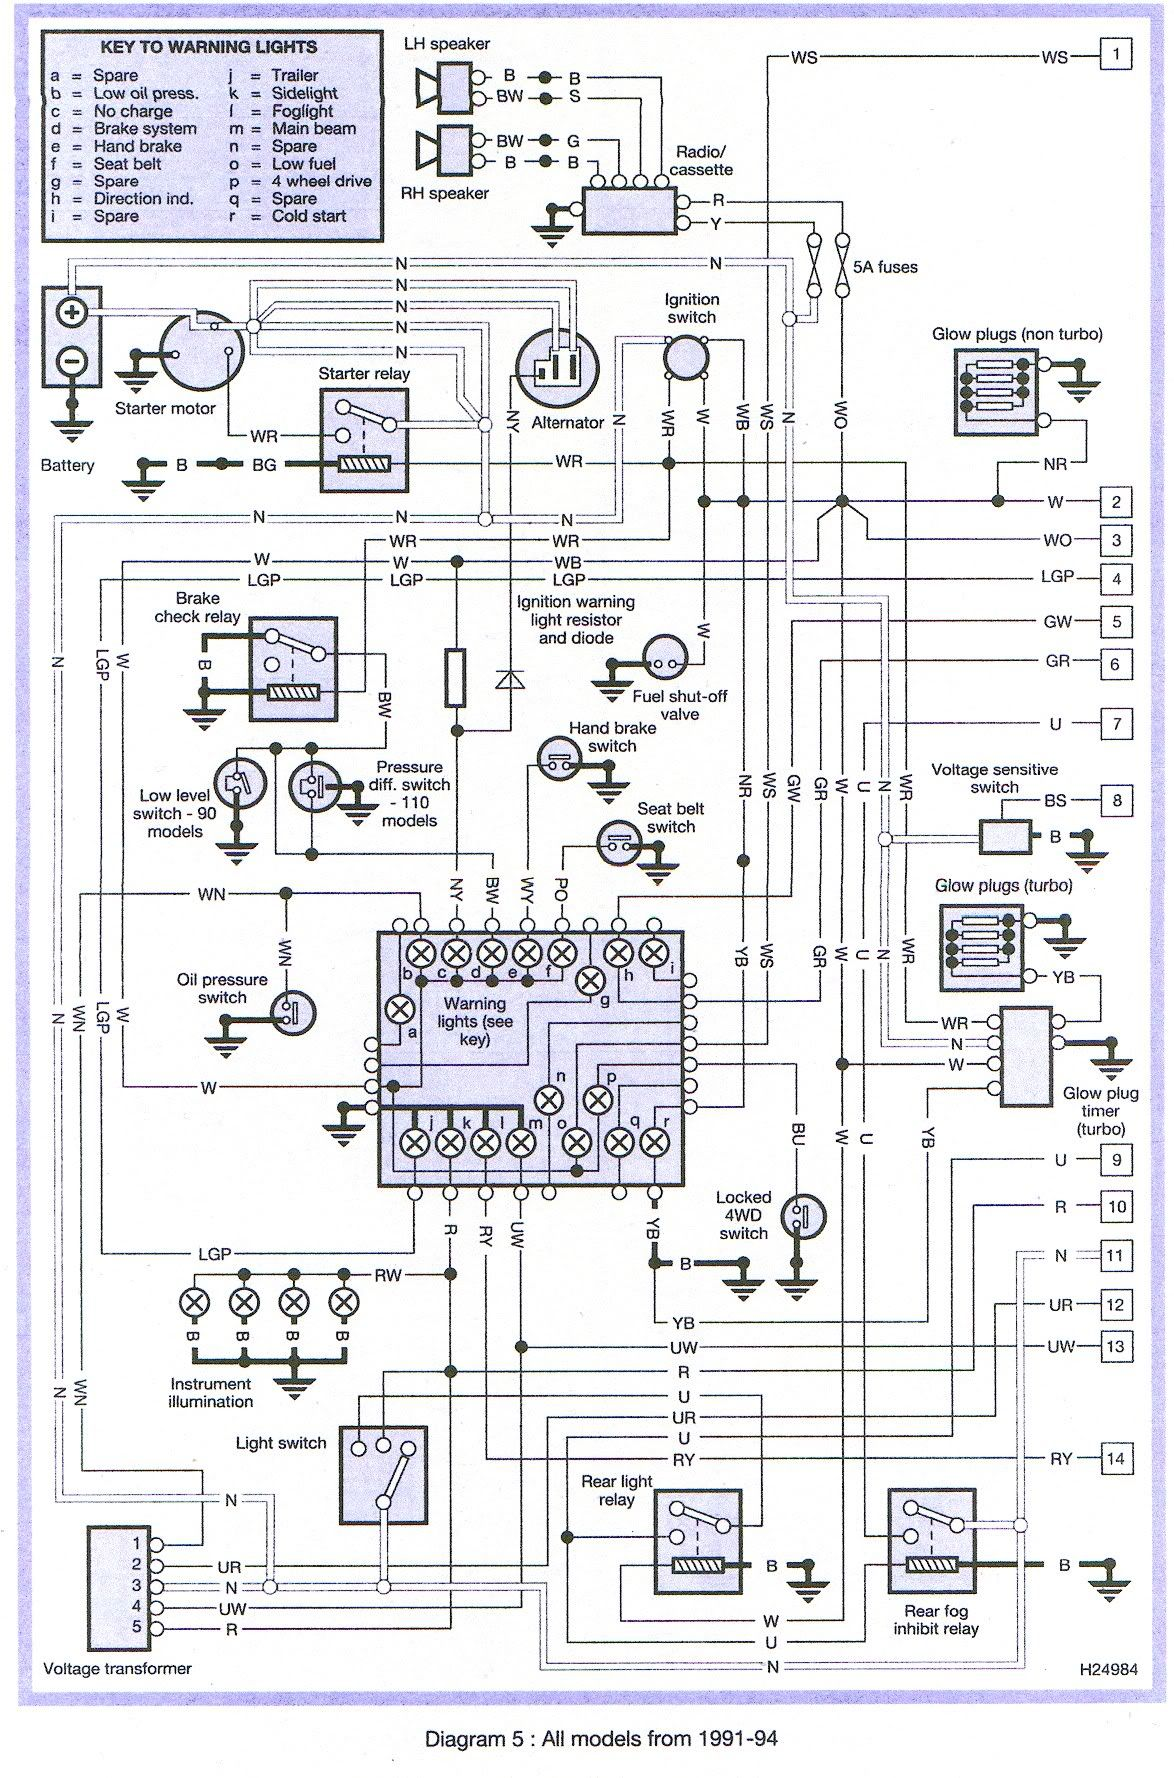 Fuse Box Diagram Rover 75 : Land rover discovery wiring diagram manual repair with